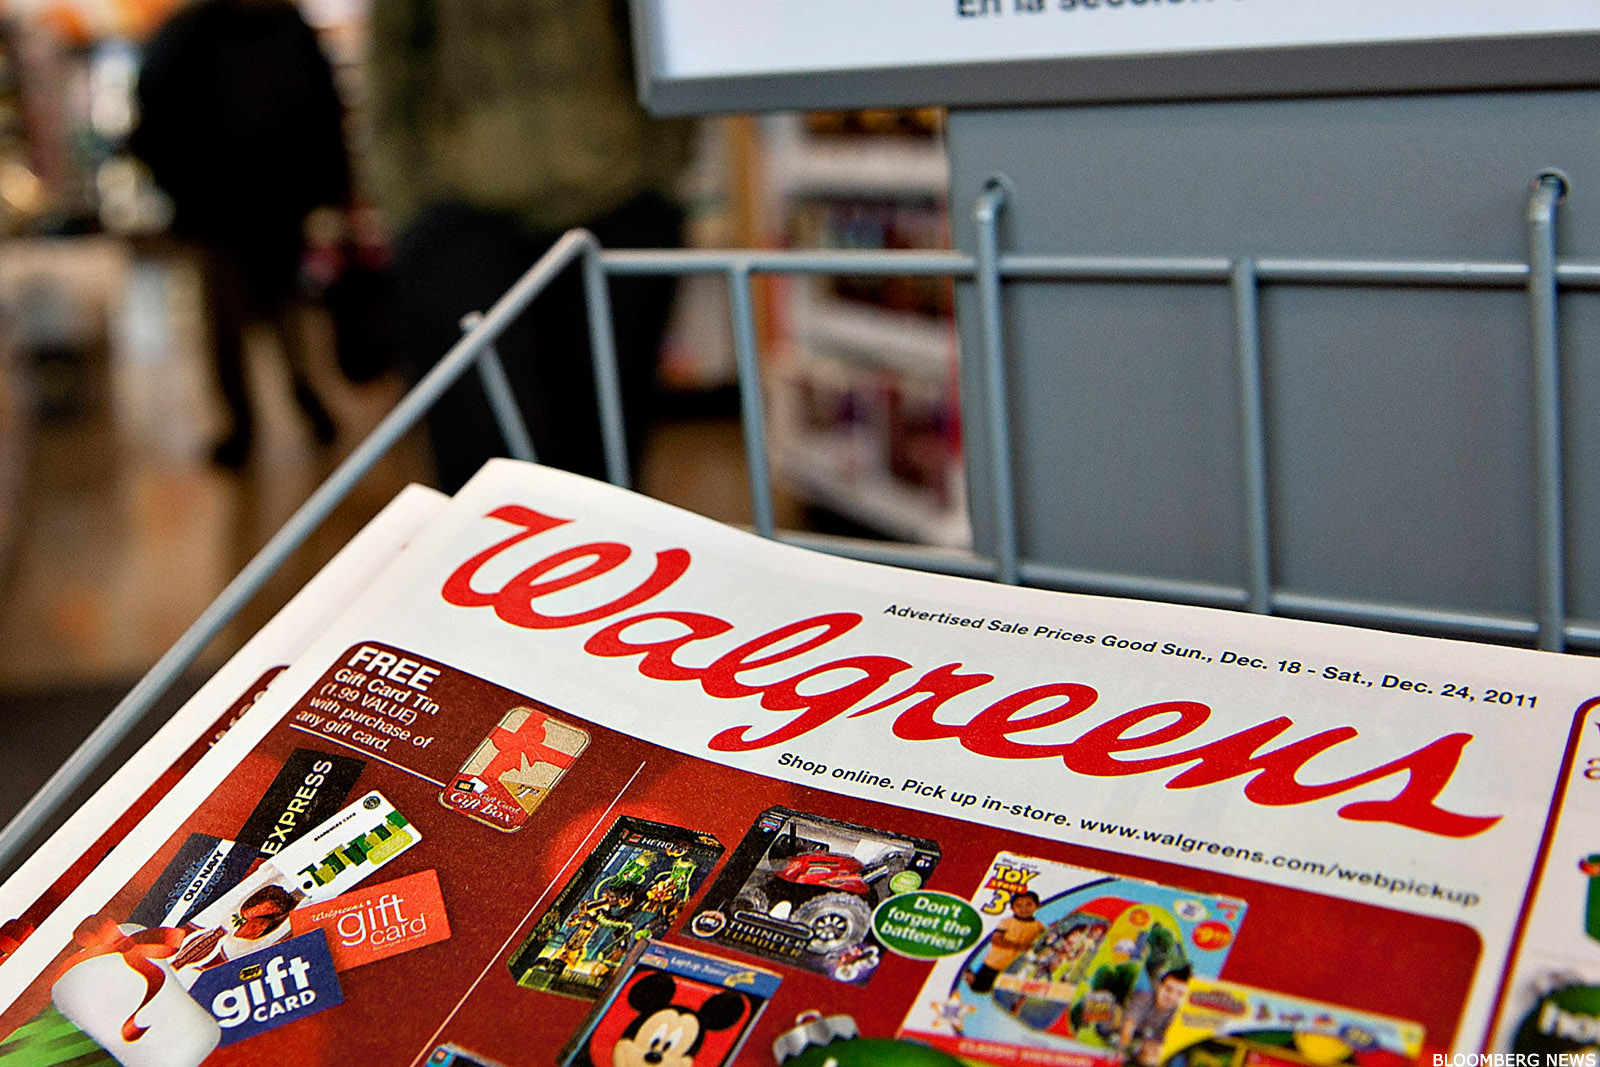 Walgreens Stock Quote Walgreens Isn't Out Of The Weeds Yet Even After Earnings Beat